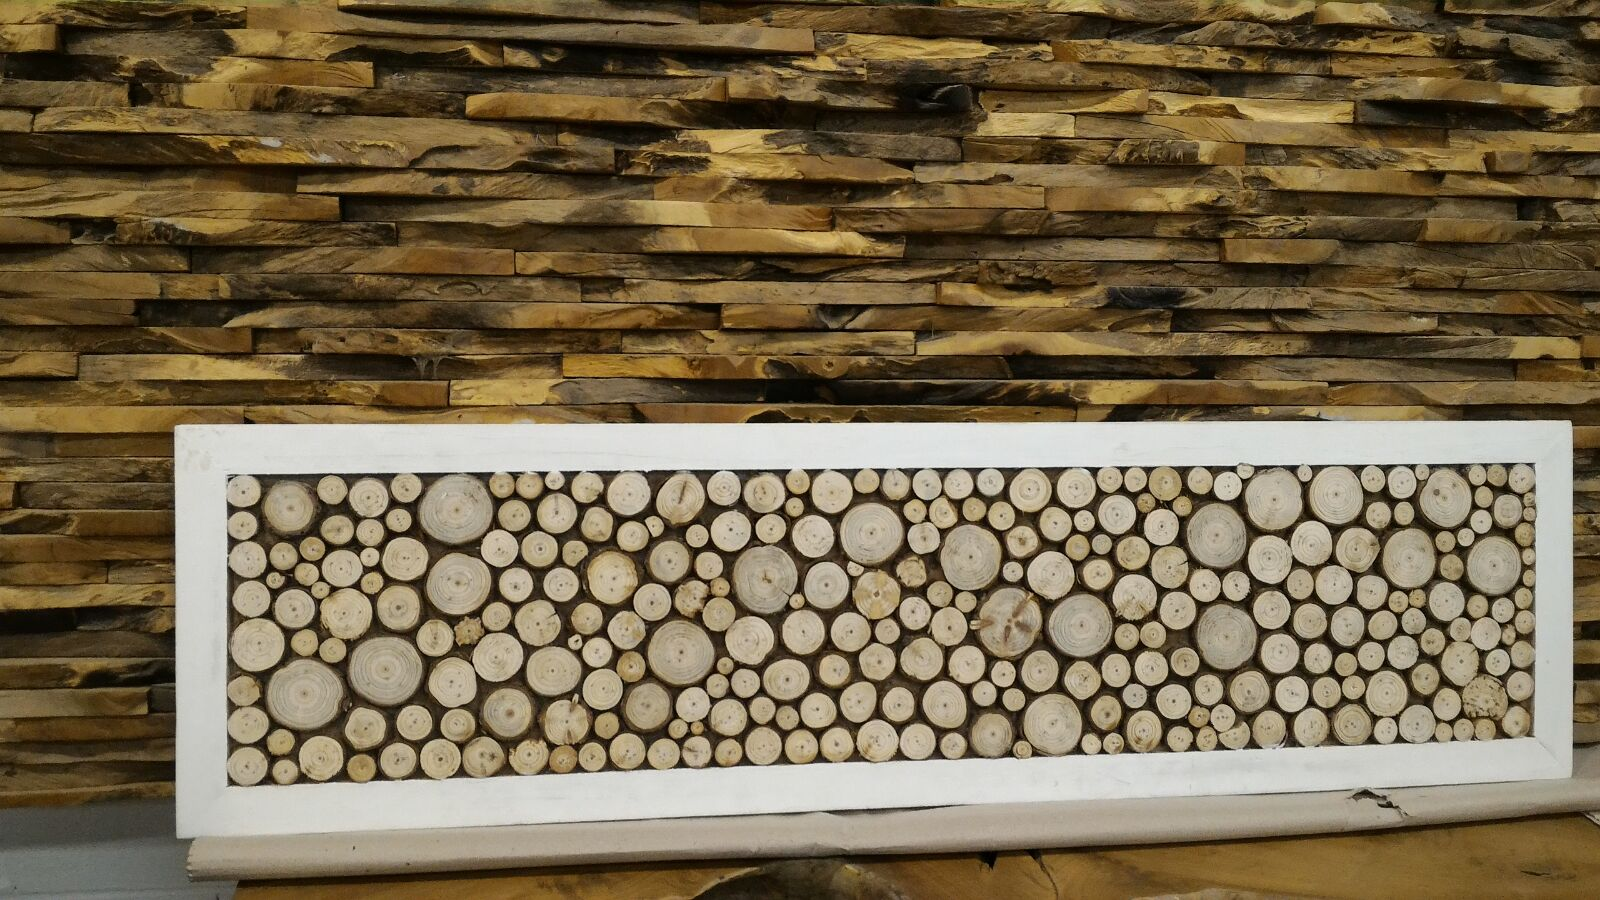 Fir Wood Chip Wall Art Sculpture Decor (122cm x 33cm)